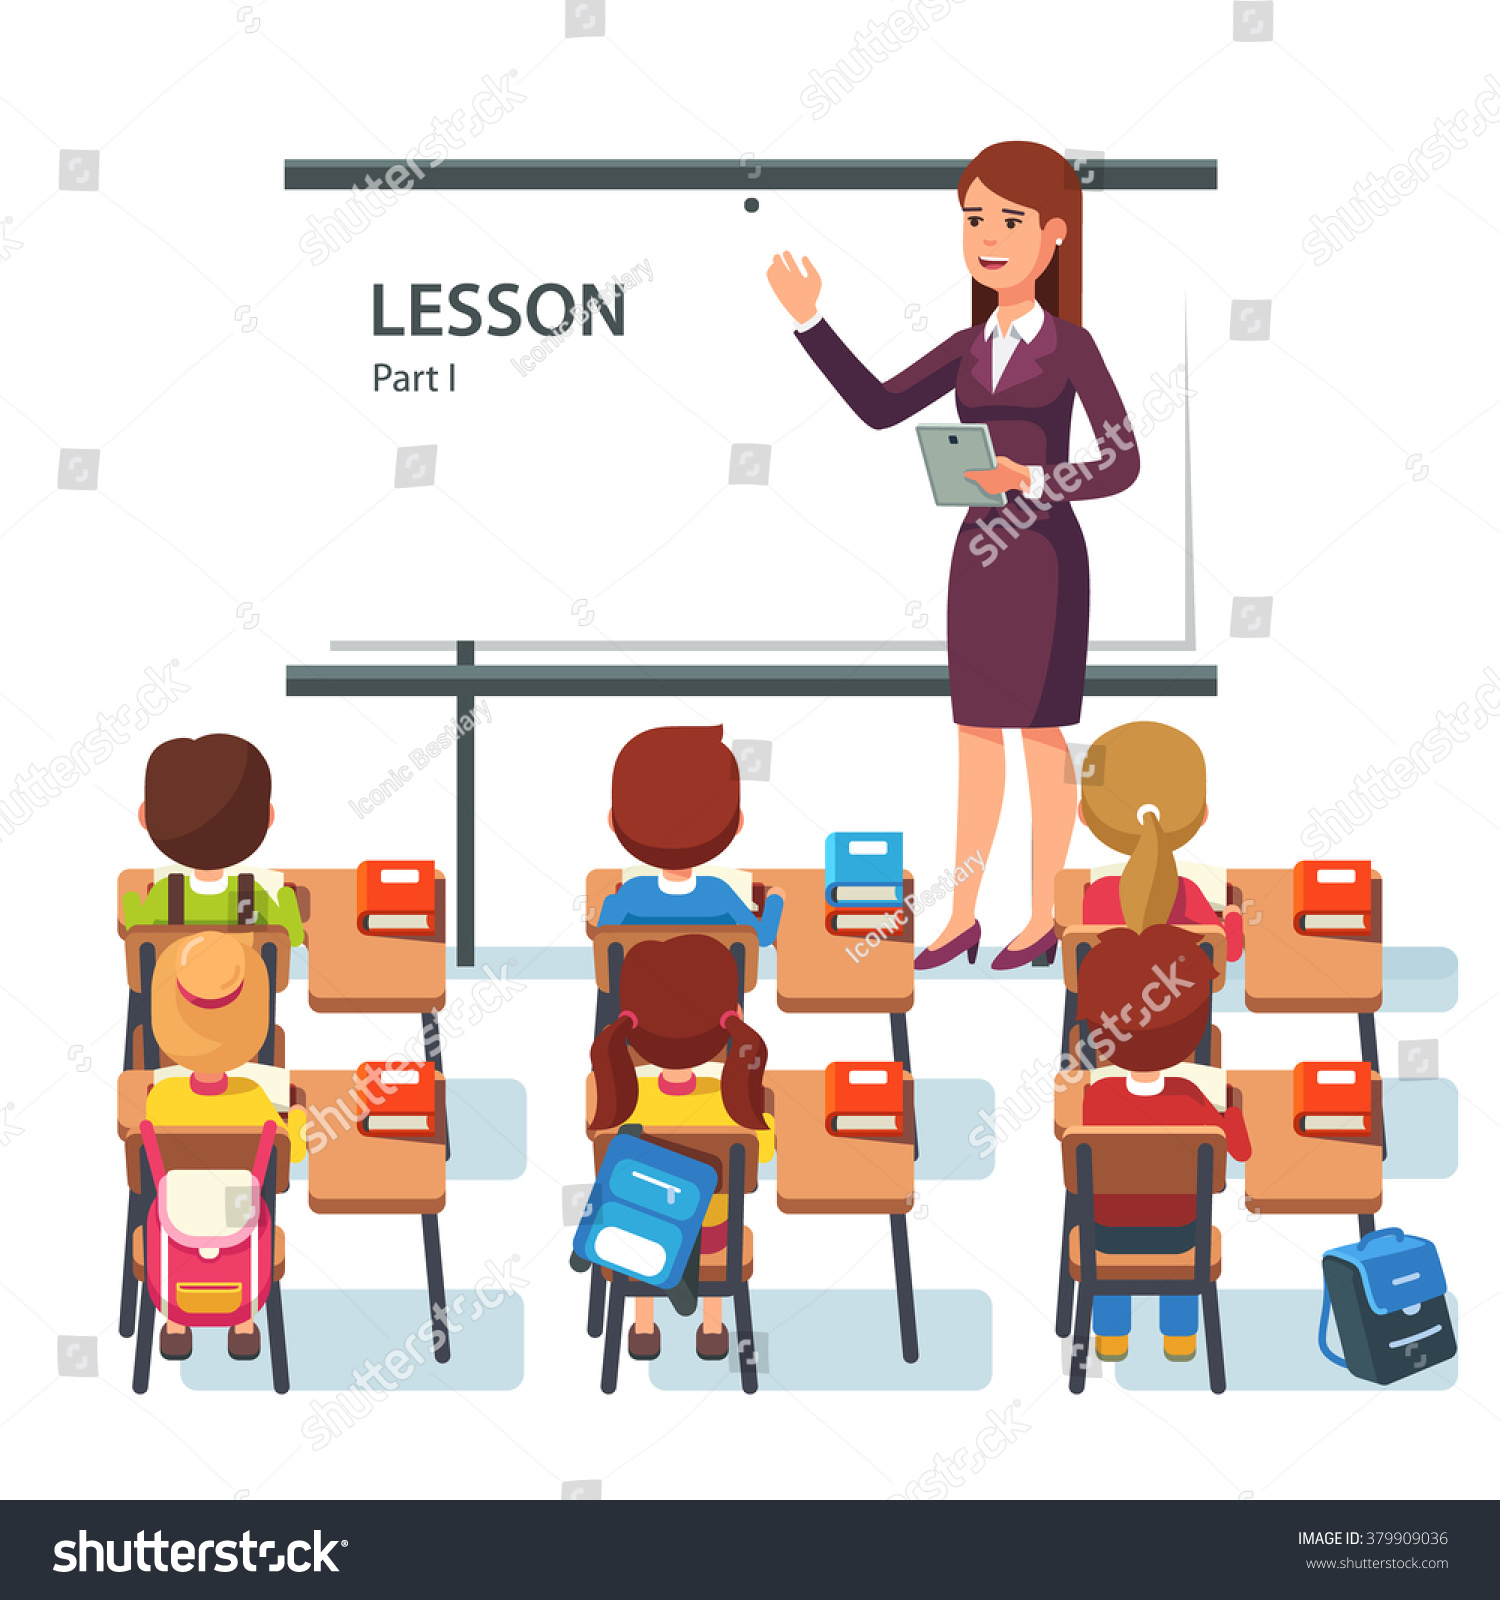 Modern Classroom Lesson Indicators : Modern school lesson little students and teacher classroom with whiteboard pupils tables